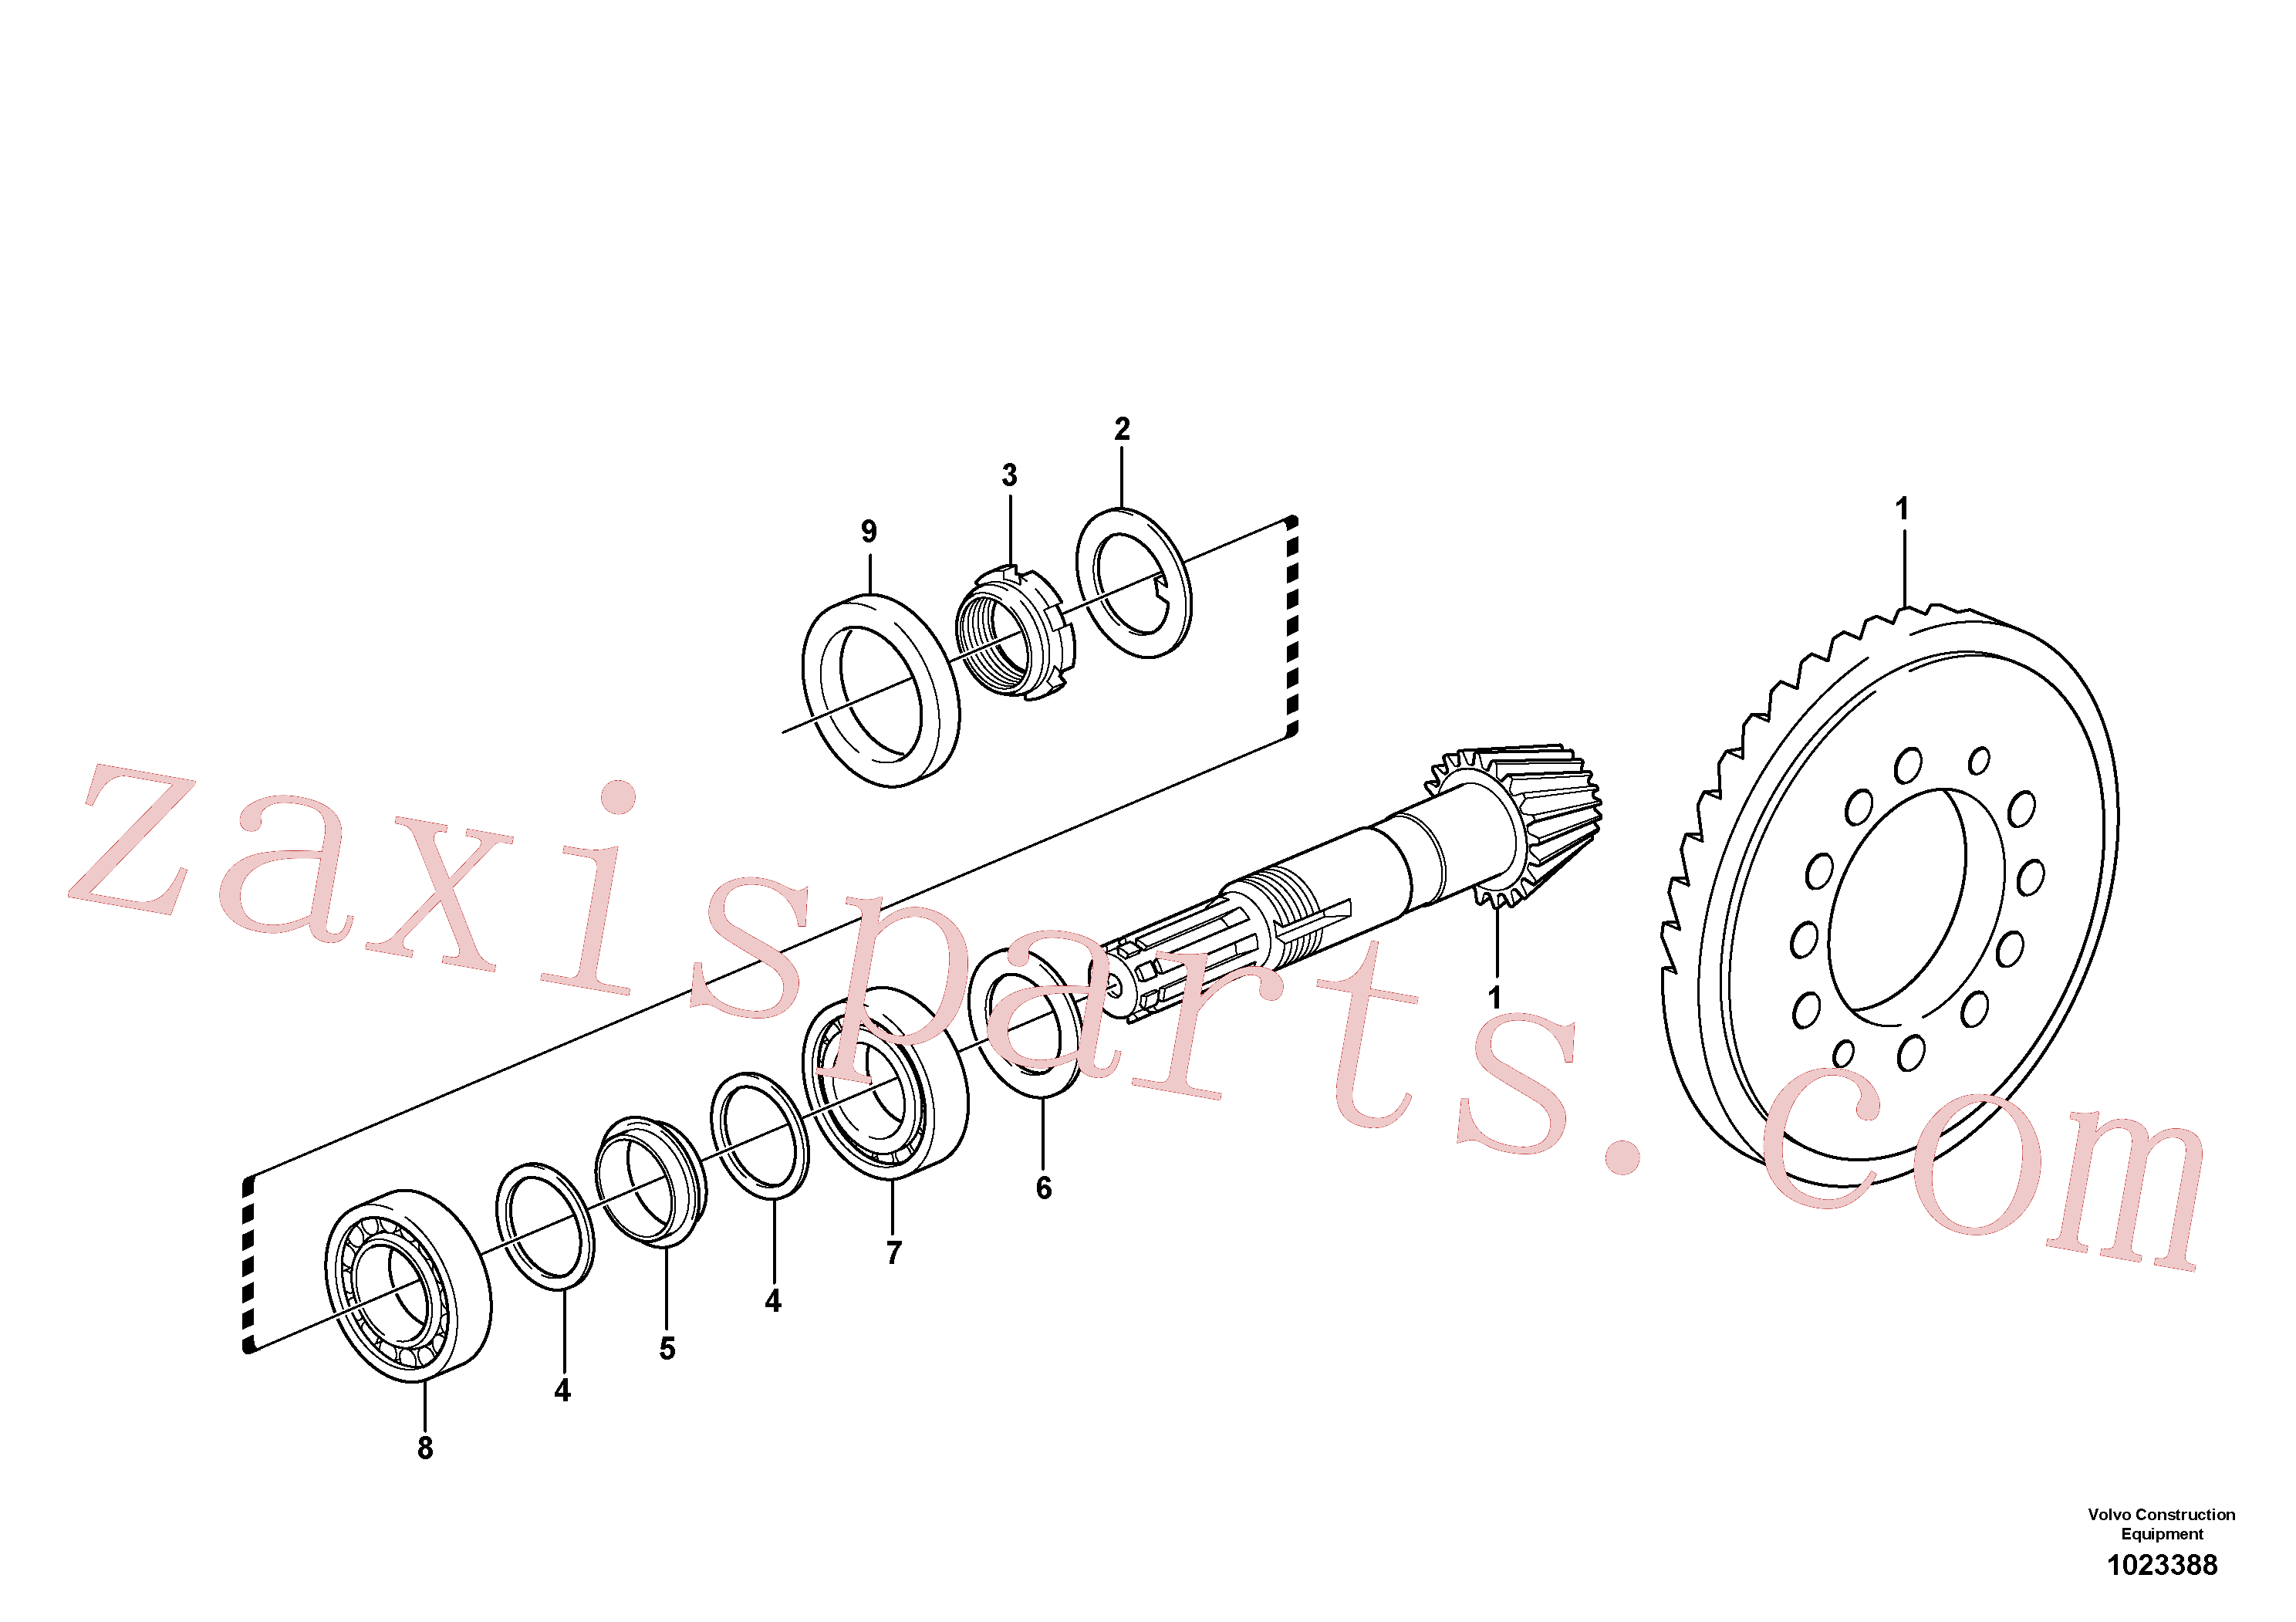 VOE11709294 for Volvo Pinion(1023388 assembly)